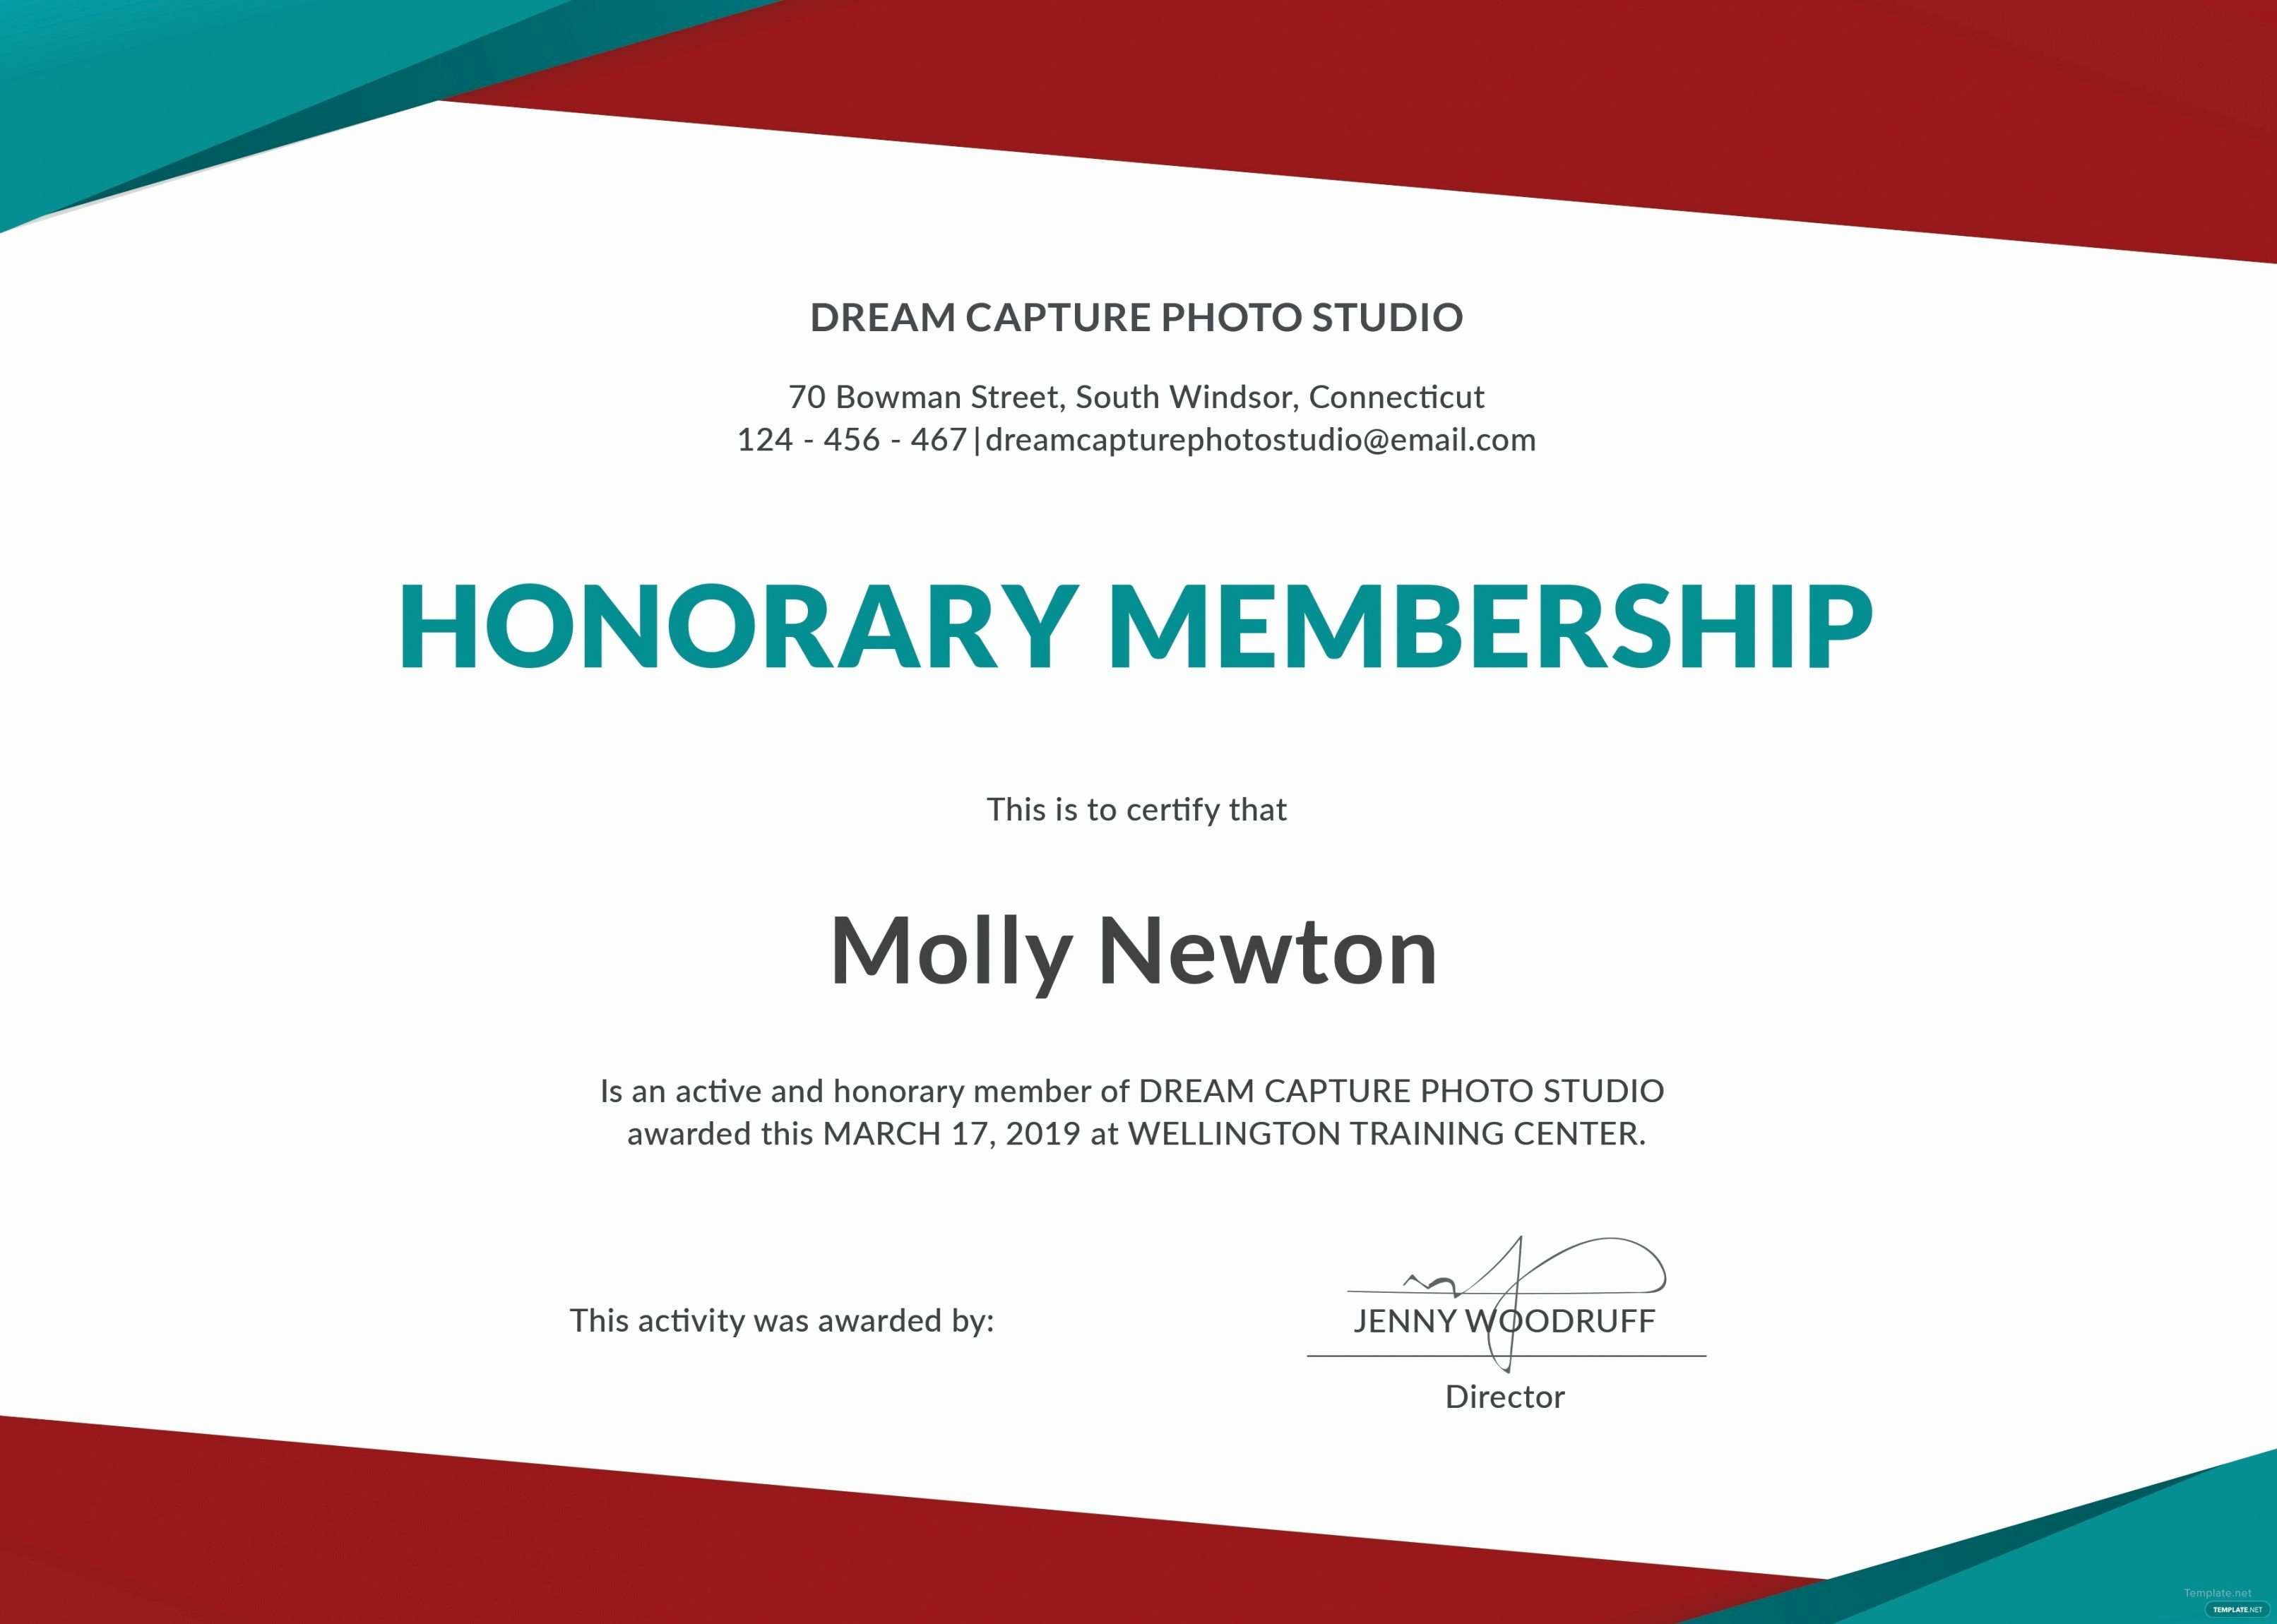 Llc Member Certificate Template Best Of Membership Certificate Template Llc New Church Member Word